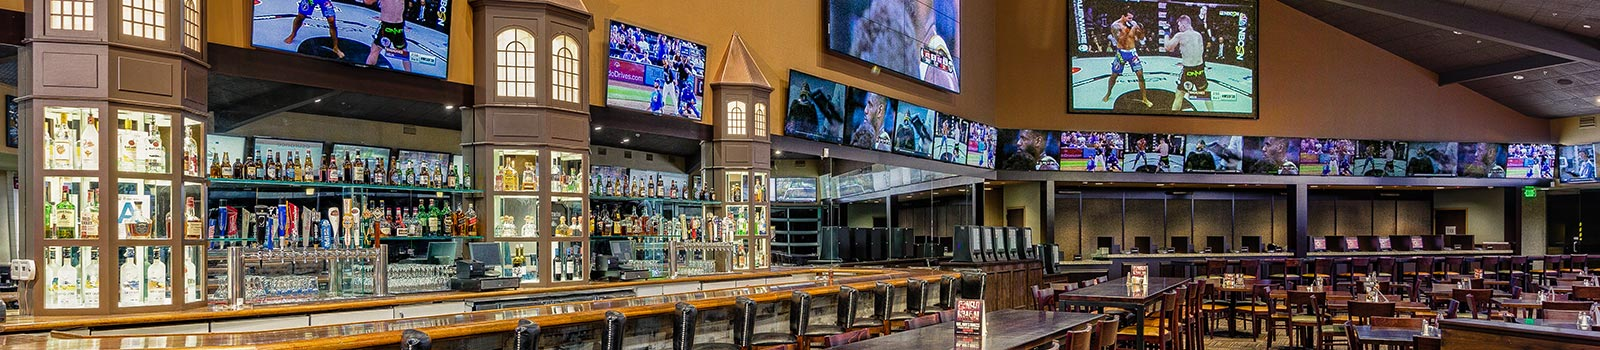 The Finish Line Sports Bar & Grill, which can be found in Pomona, California, is a restaurant which offers not just food and drink but the chance to wager on horse racing/5(1).